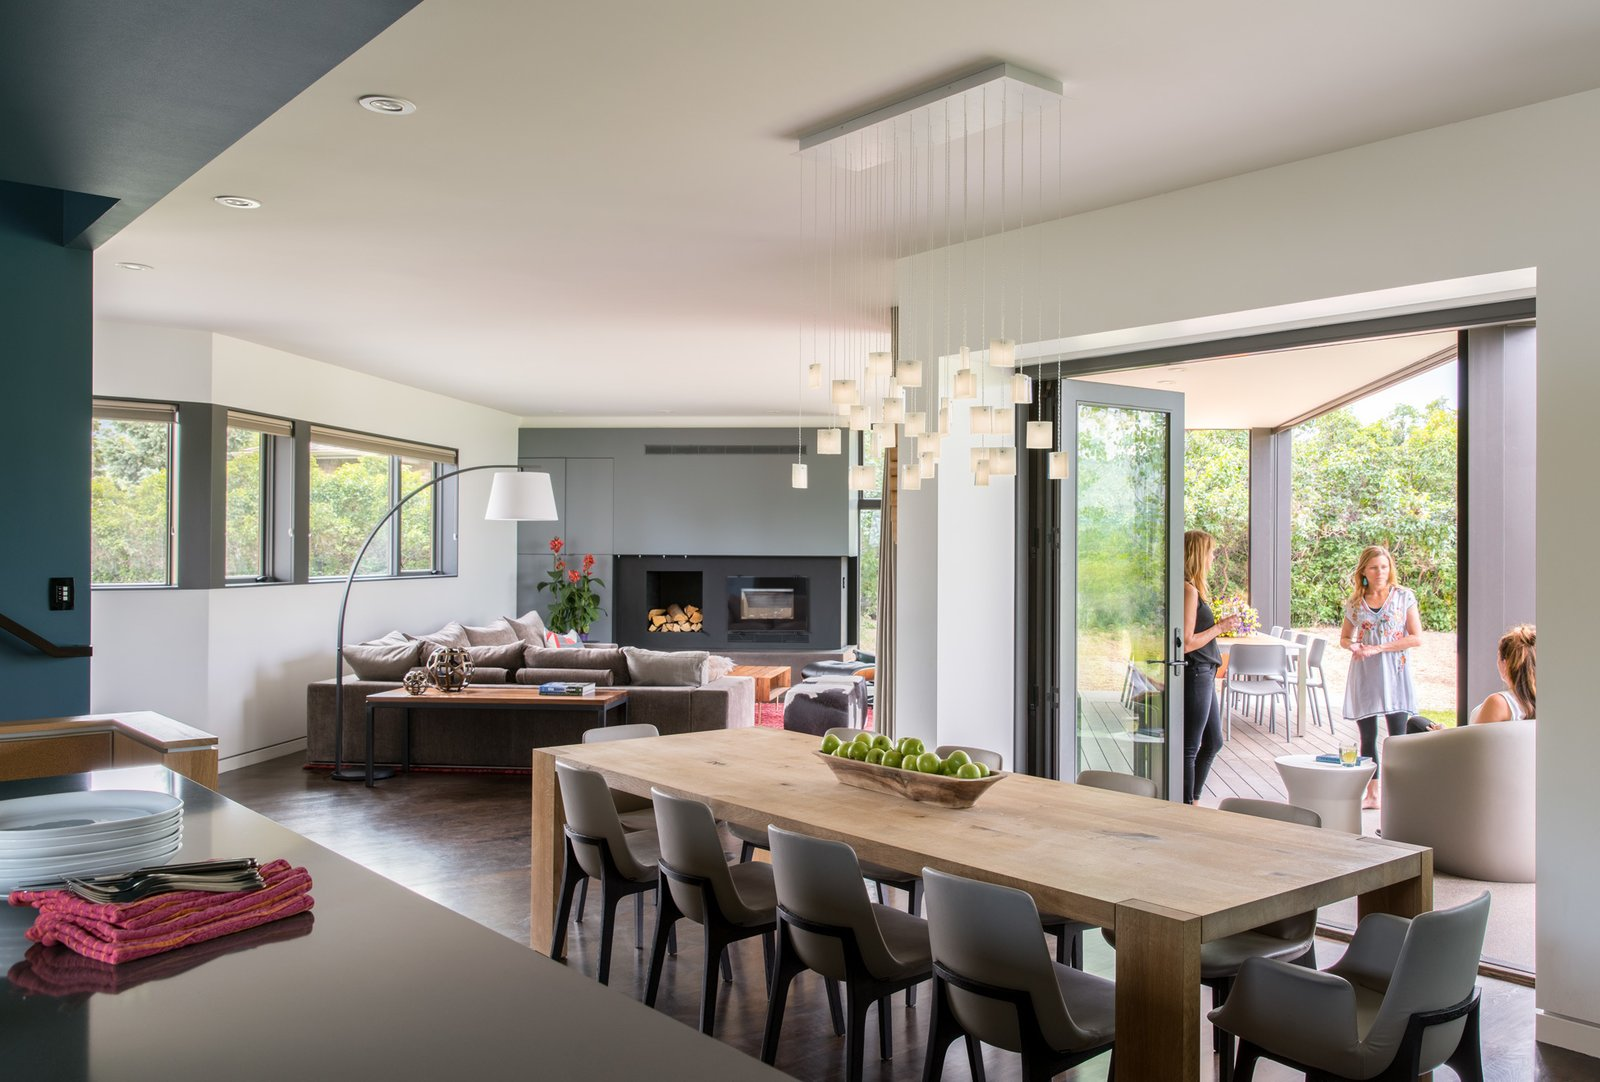 The healthy communion between nature and structure is what the family loves most about the home. It is open, dramatic, light, and inviting, which is everything the clients wanted in a new house. The transition between what's beyond the windows and what's within is appealingly effortless, and entirely in keeping with a laid-back Colorado lifestyle.  Sunset House by HMHAI